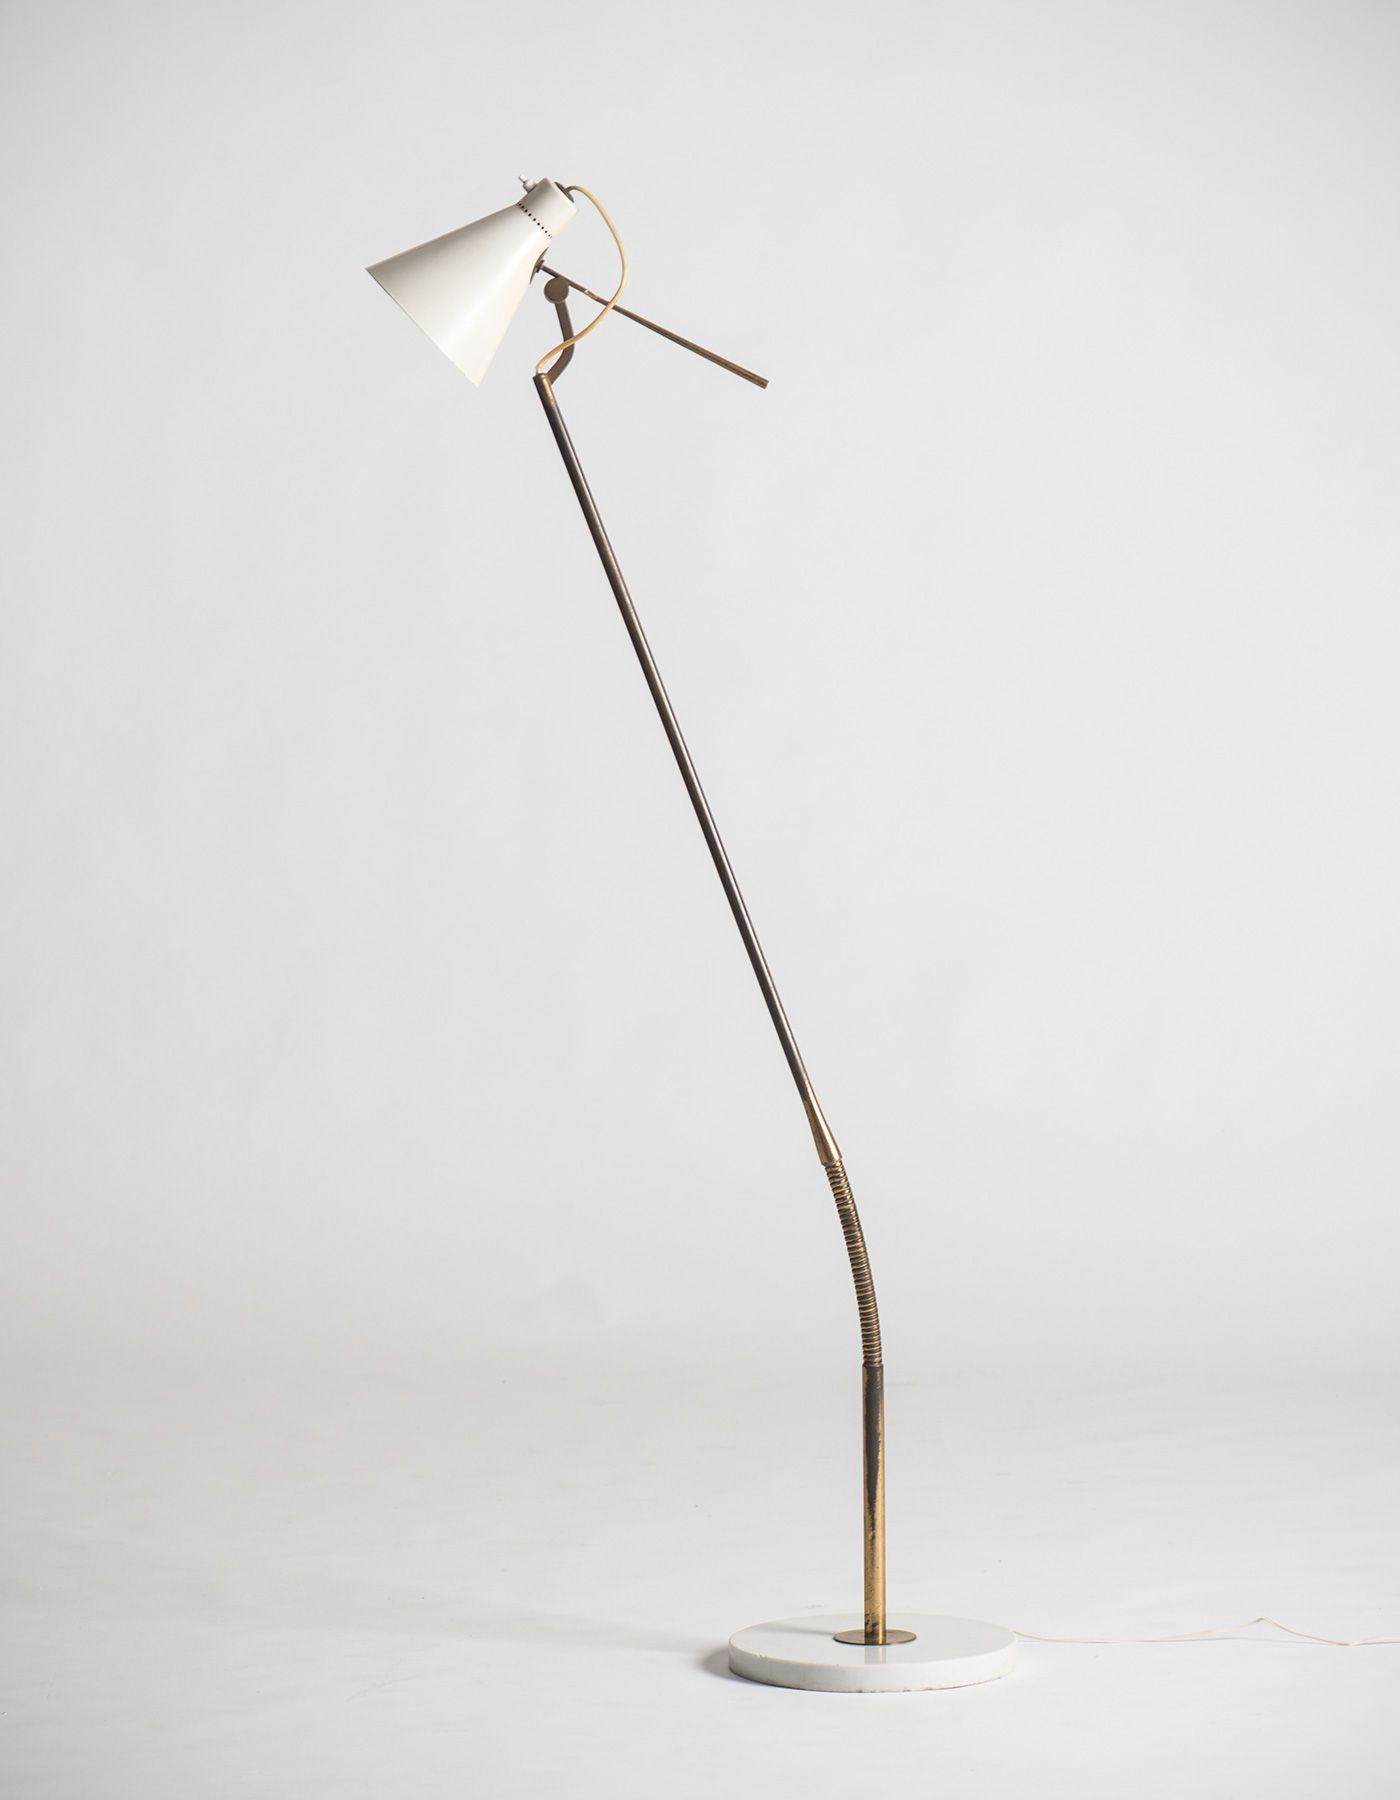 Authentic Gino Sarfatti Floor Lamp Model 1030 Designed For Arteluce Italy 1948 Materials Lacquered Aluminum Polished Bras Lampada Vintage Lampade Lamps